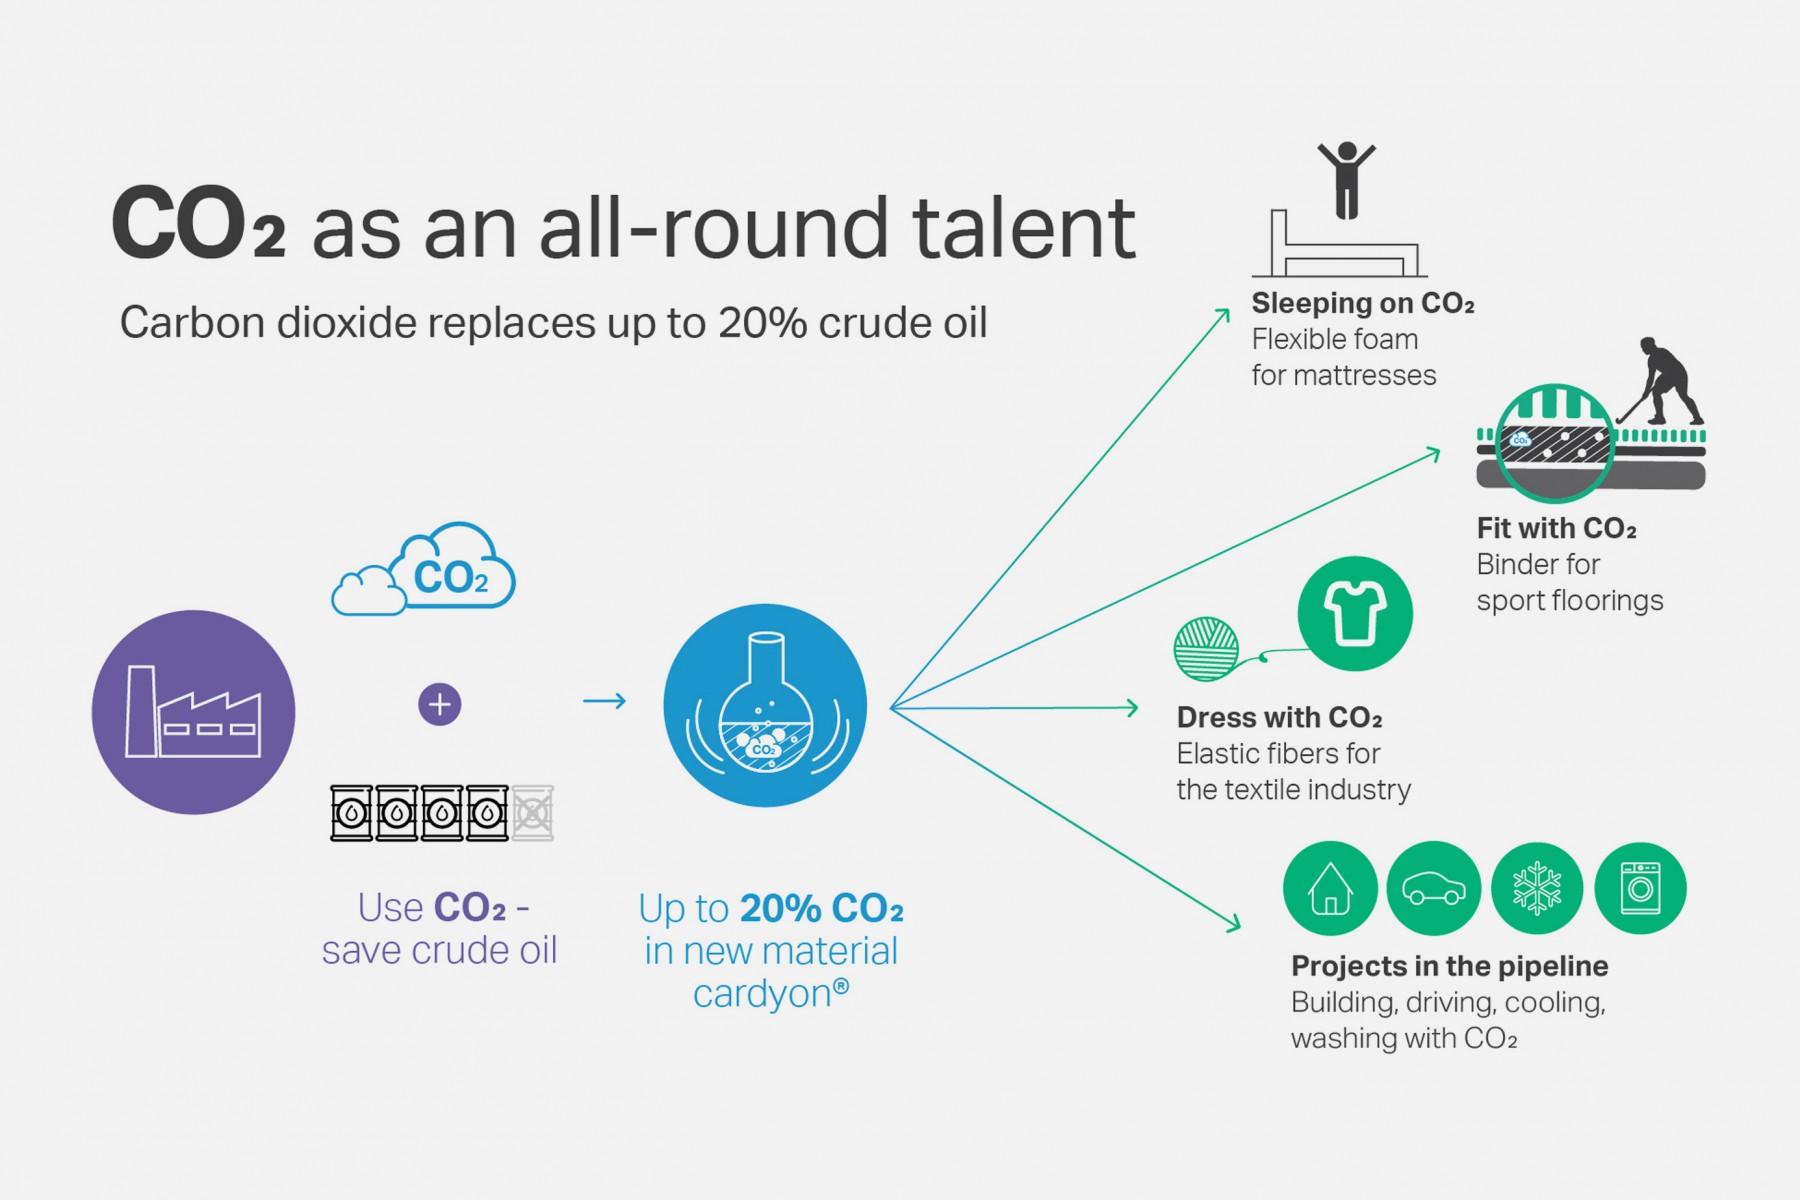 CO2 as an all-round talent